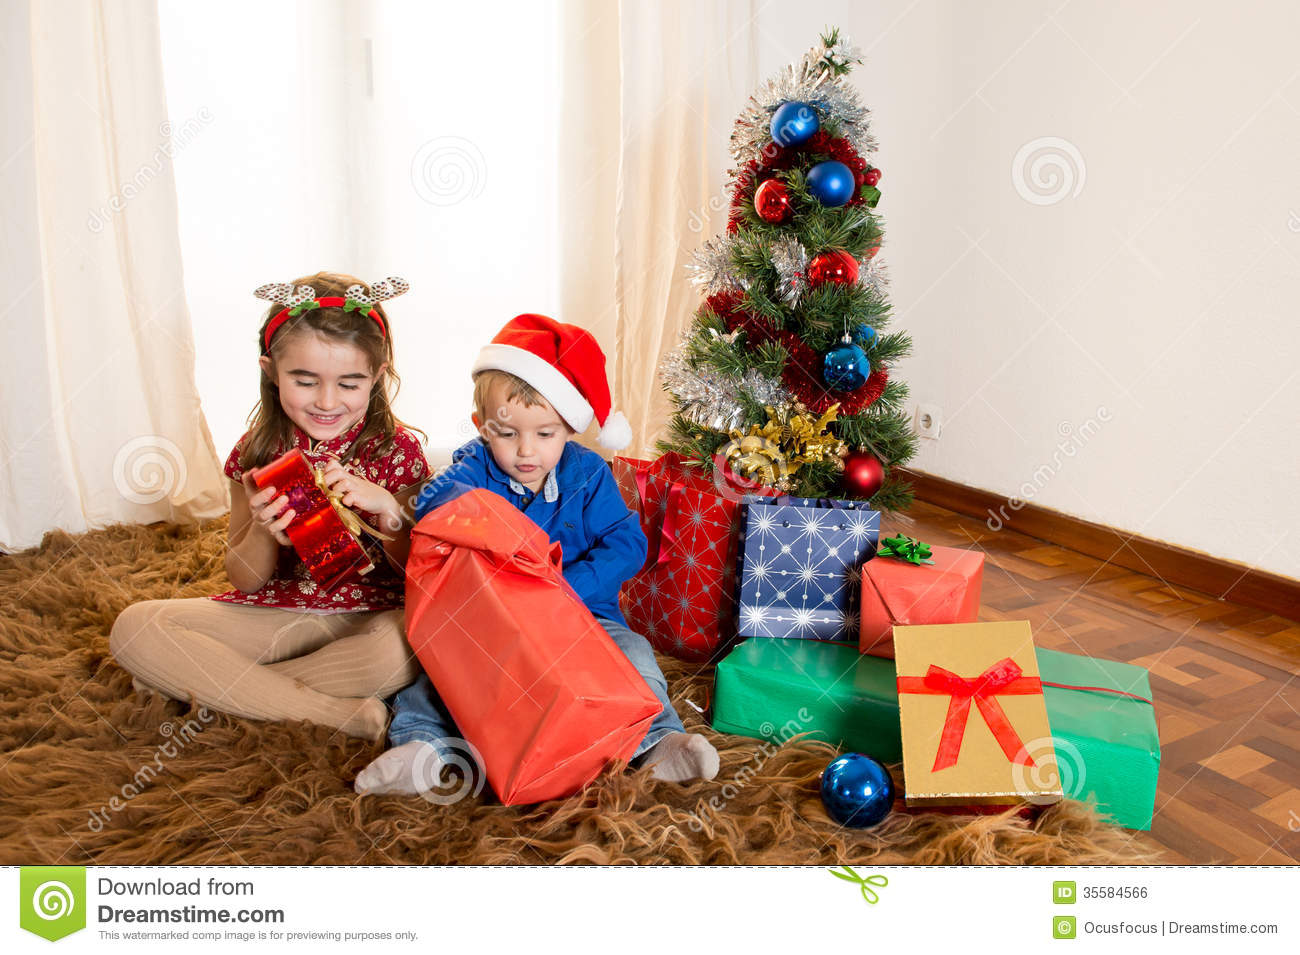 Little Kids On Rug Opening Christmas Presents Stock Photo - Image of ...